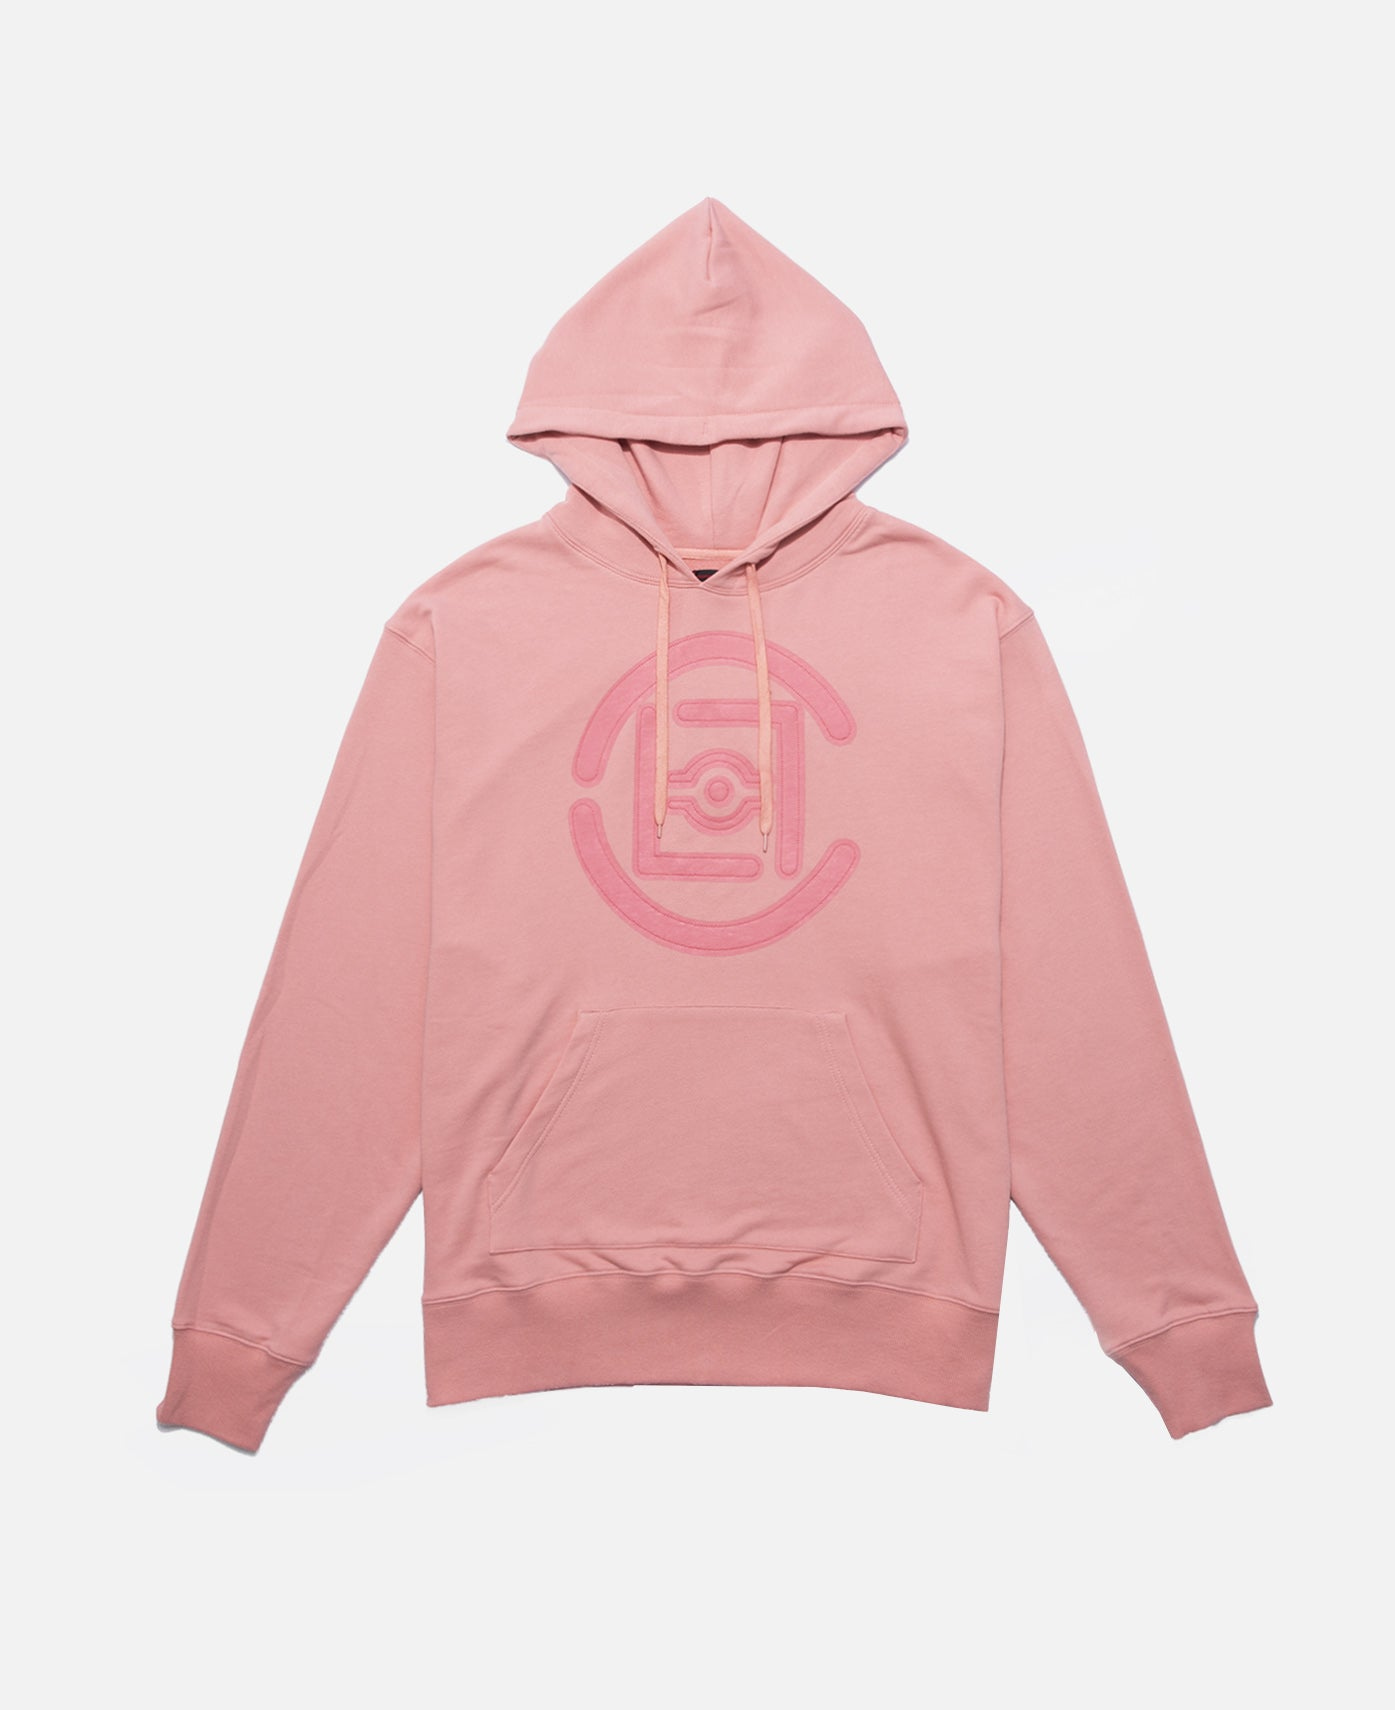 FIFTH ELEMENTAL CLOT LOGO APPLIQUE PULLOVER HOODIE (PINK)